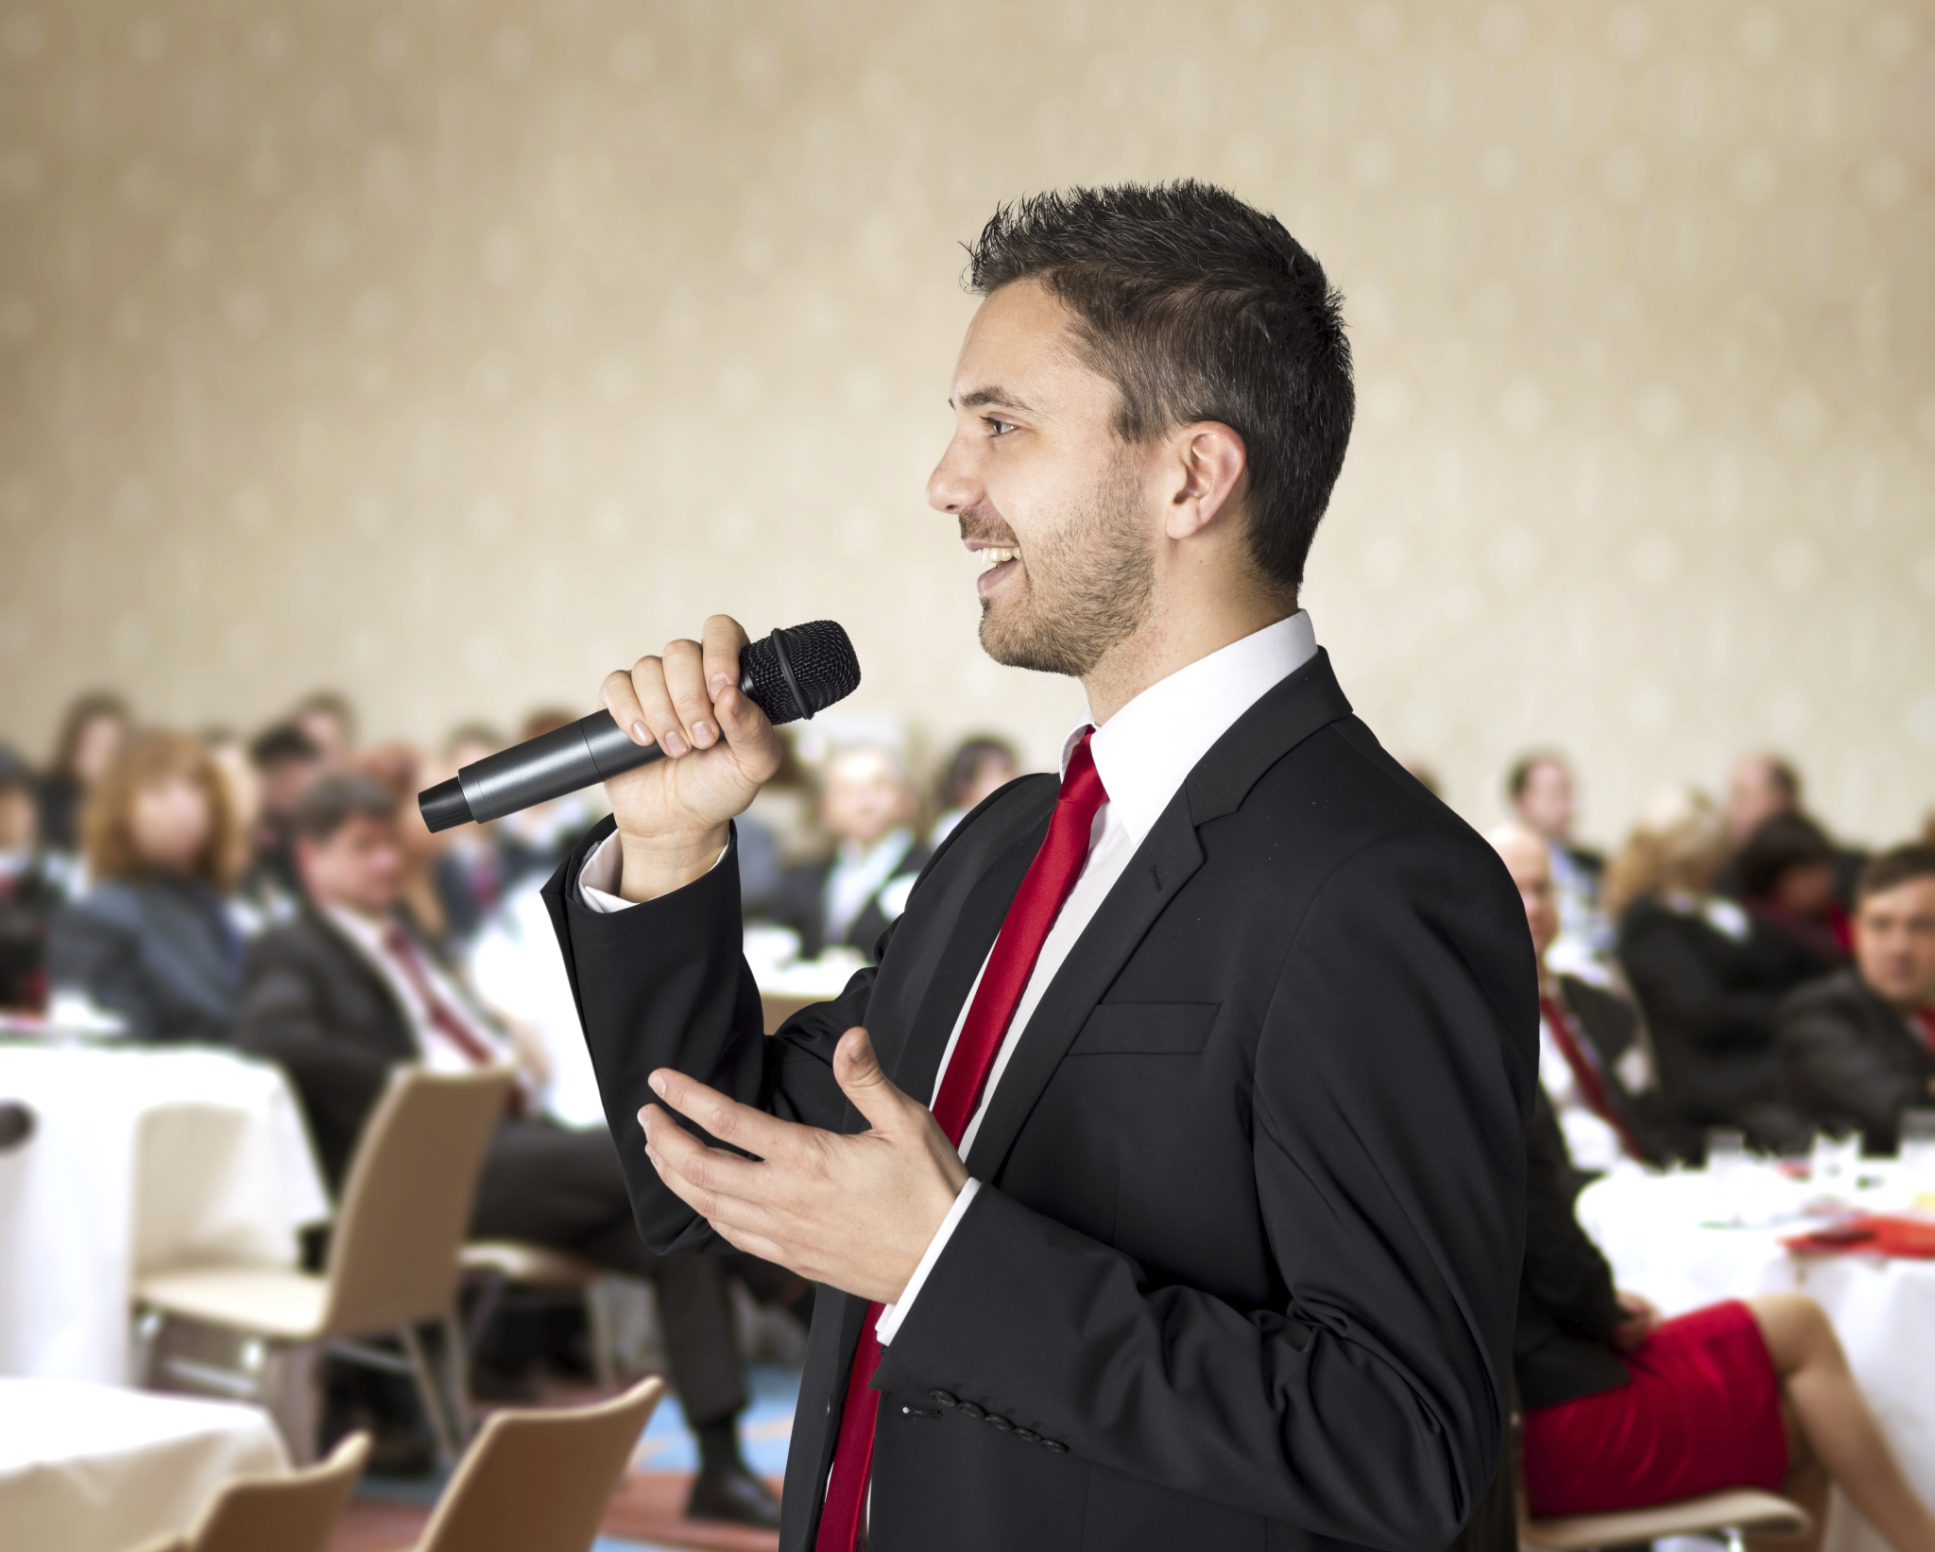 how to make conference presentations interesting